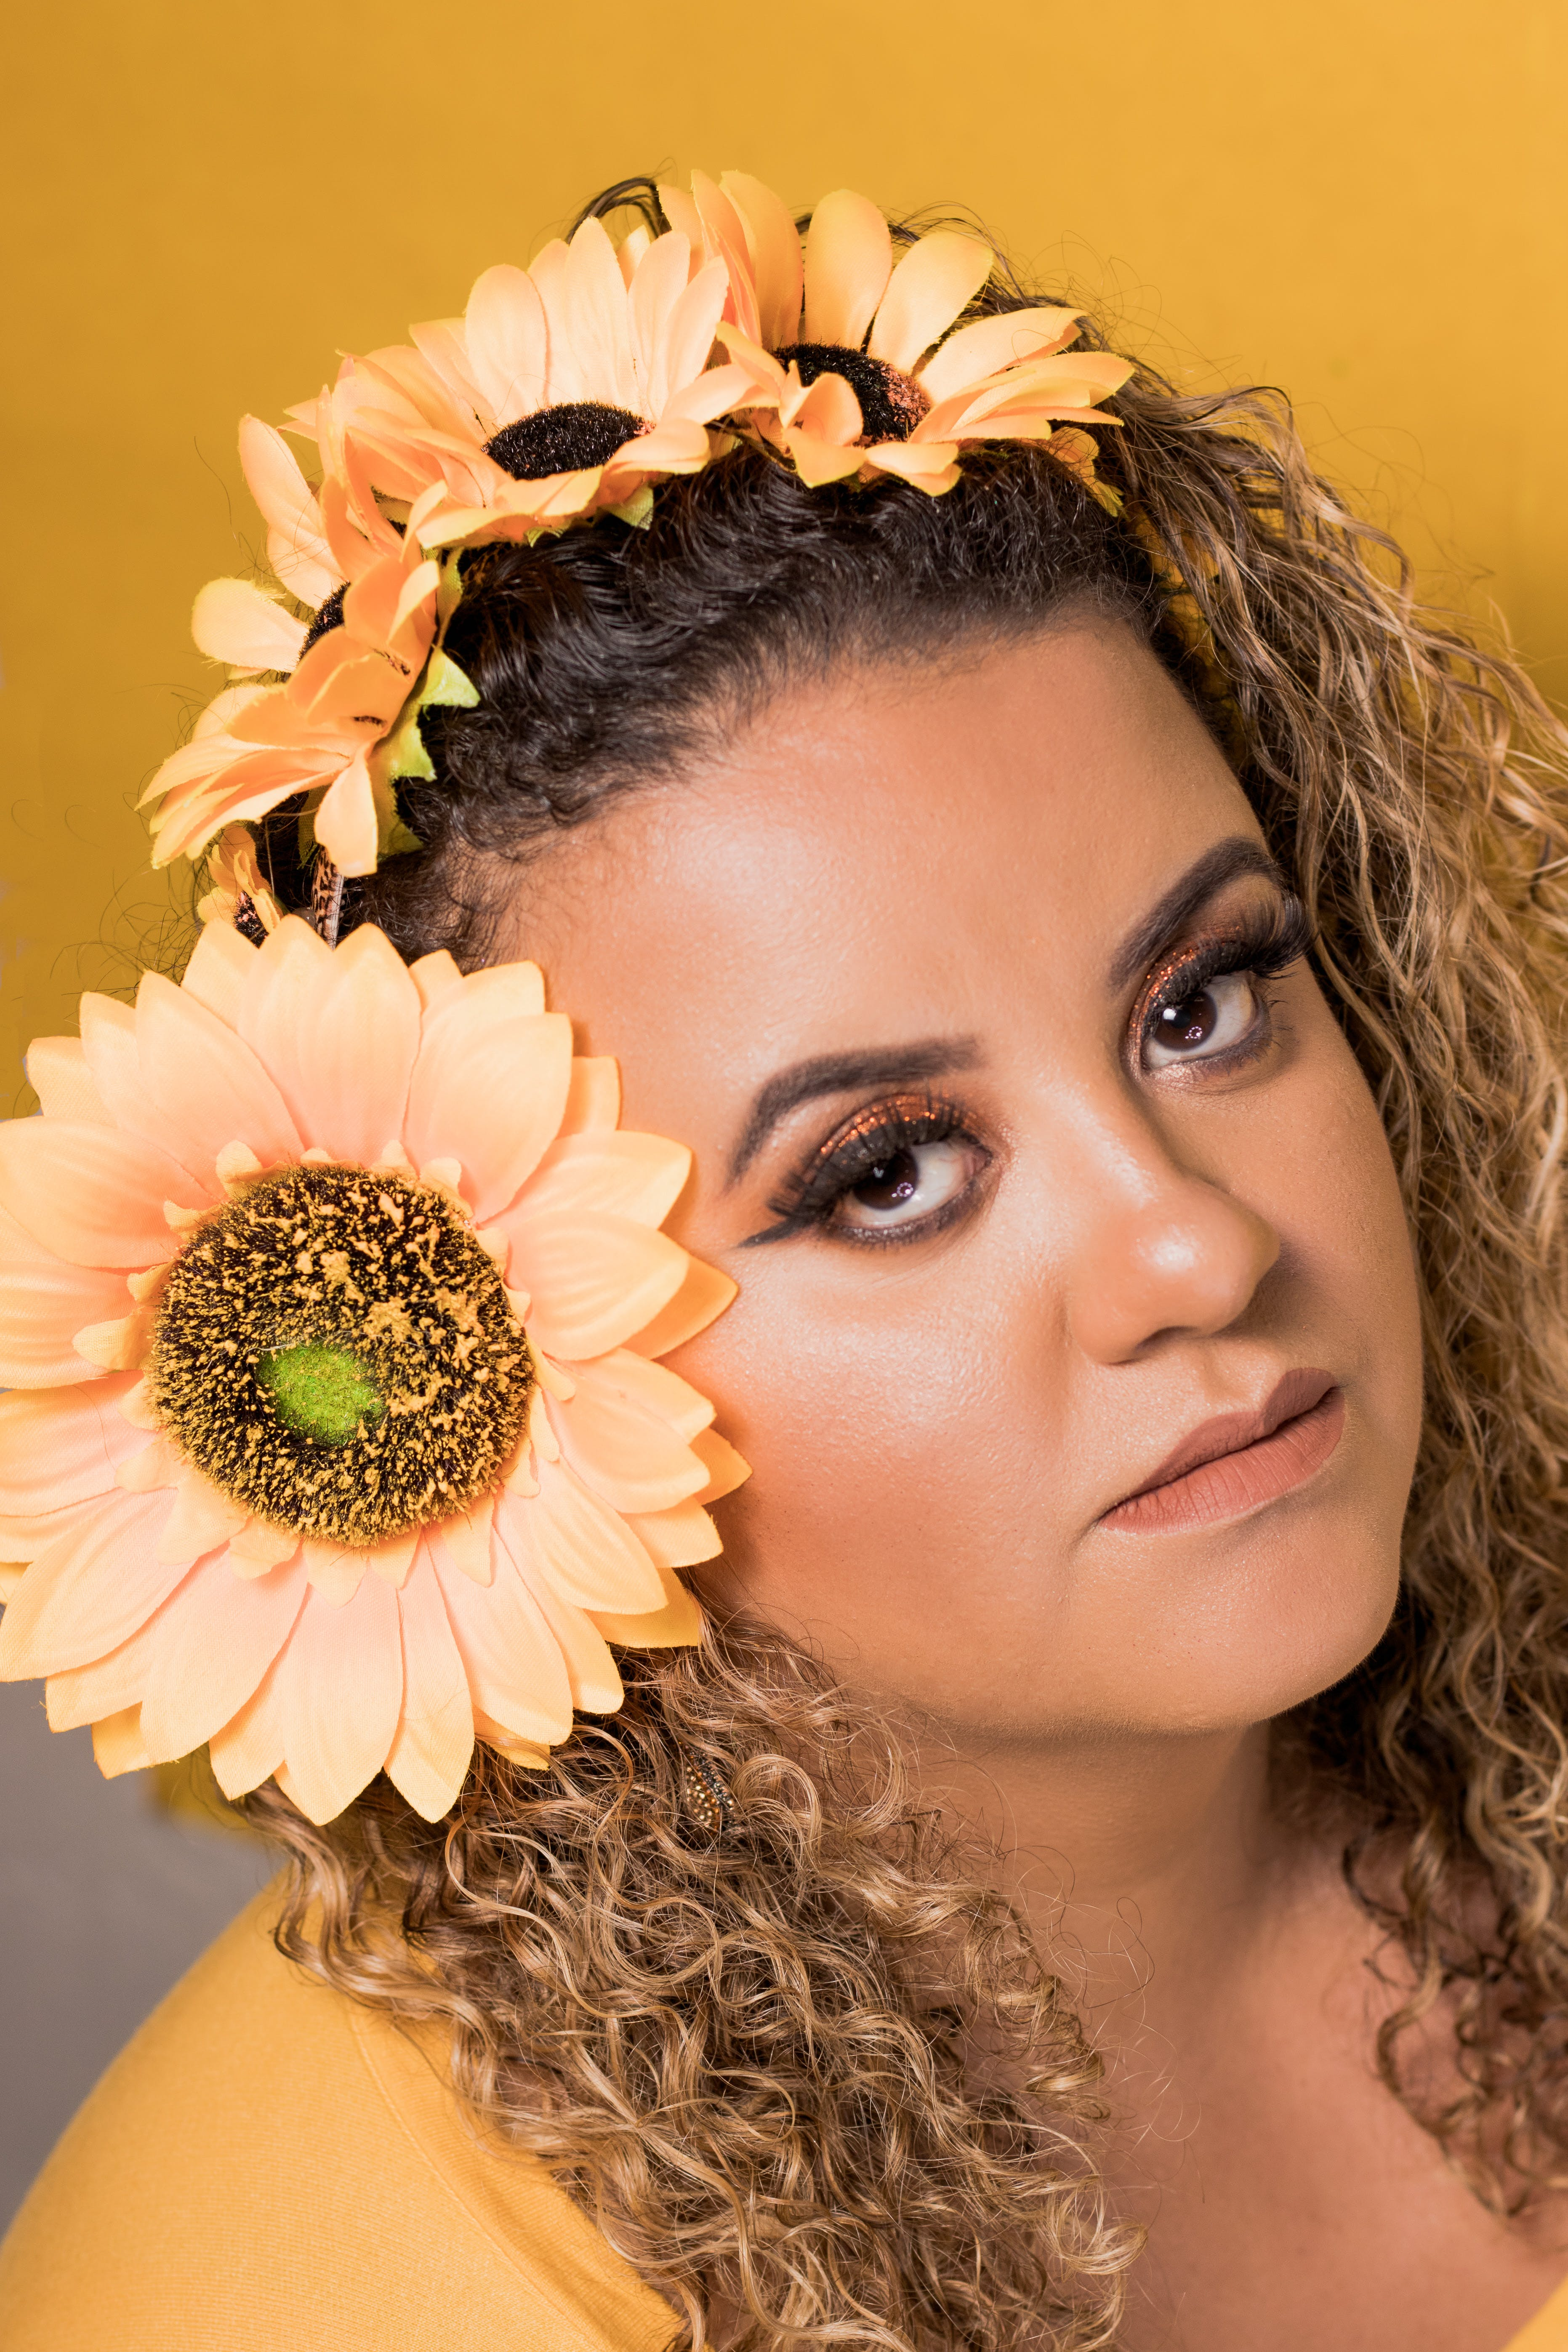 Photo of Woman in Yellow Top With Sunflowers on Her Hair